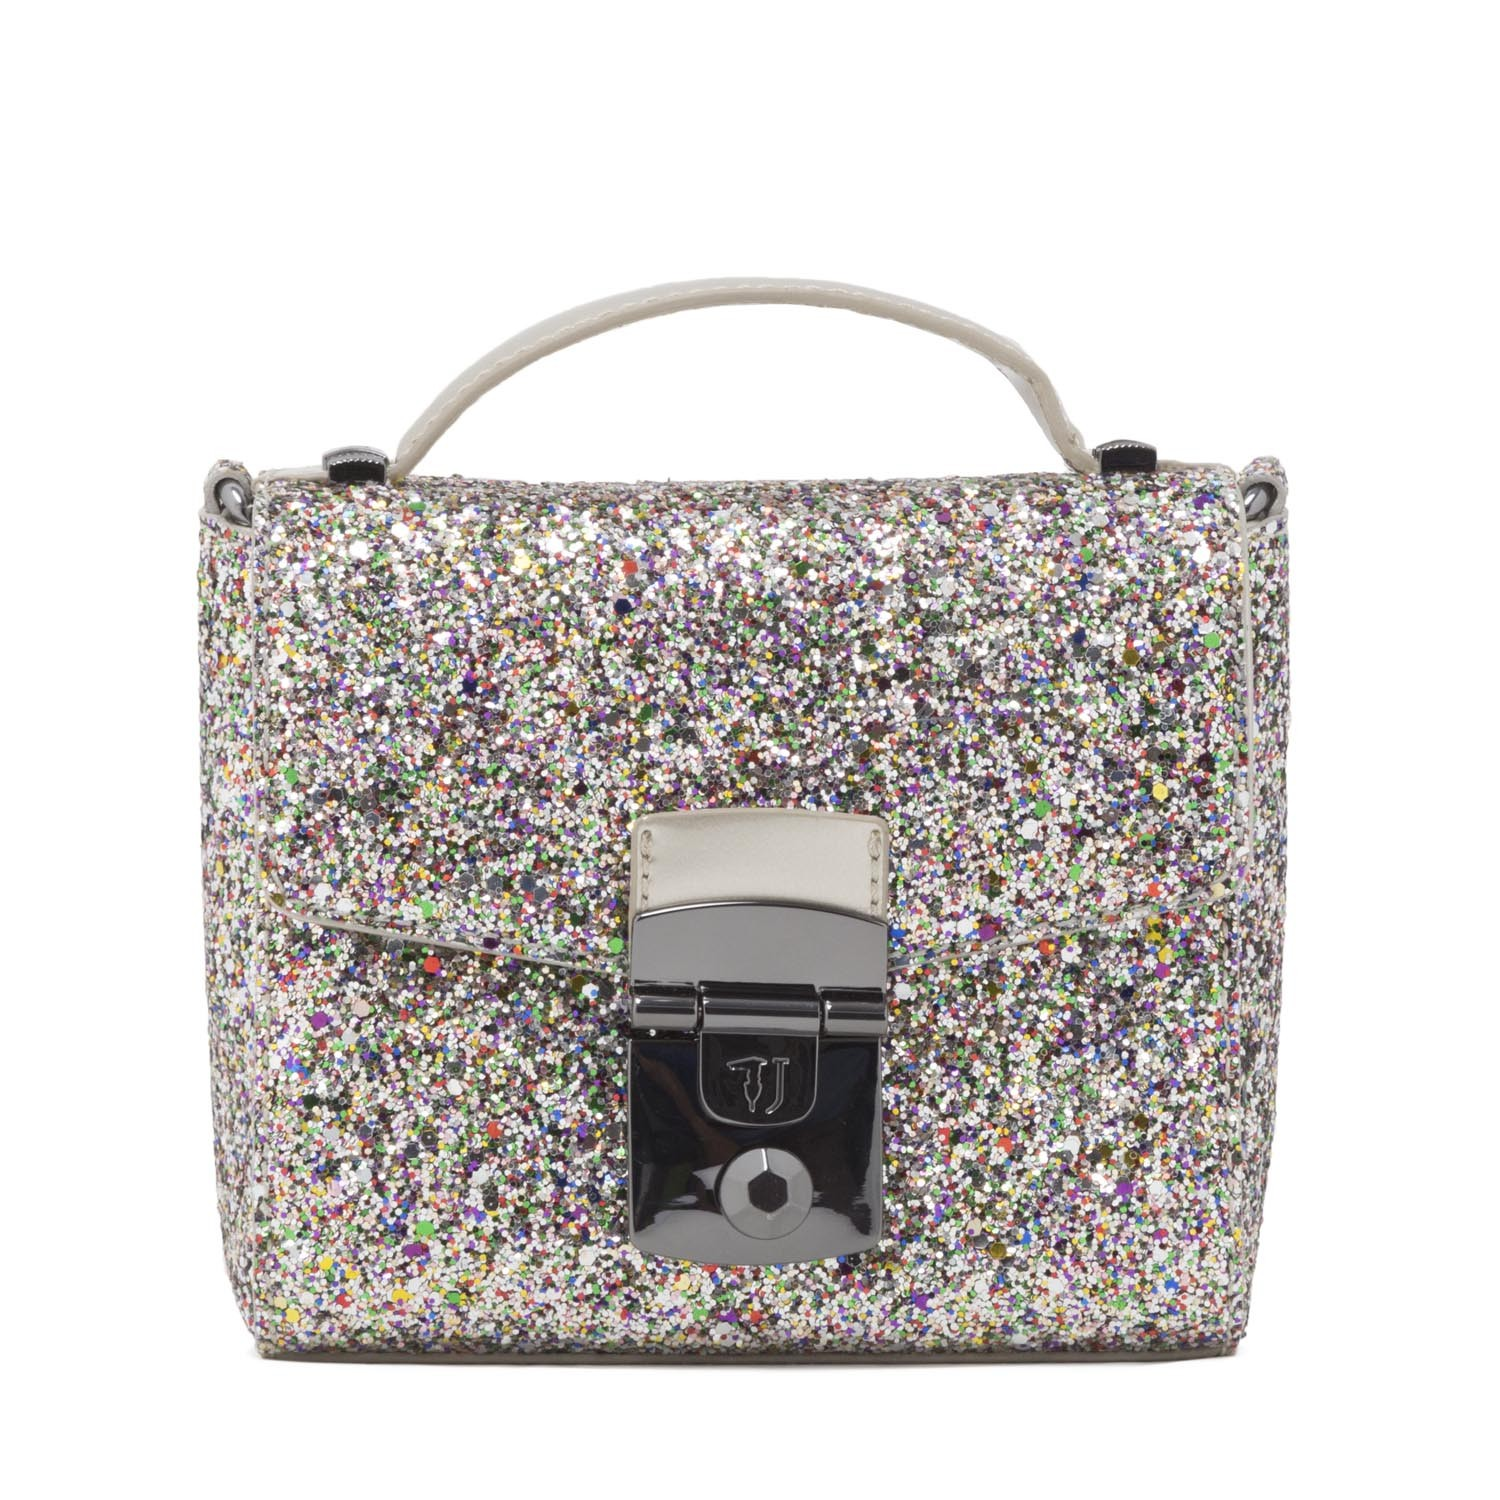 glitter-woman-bag-trussardi-jeans-available-in-black-and-gold